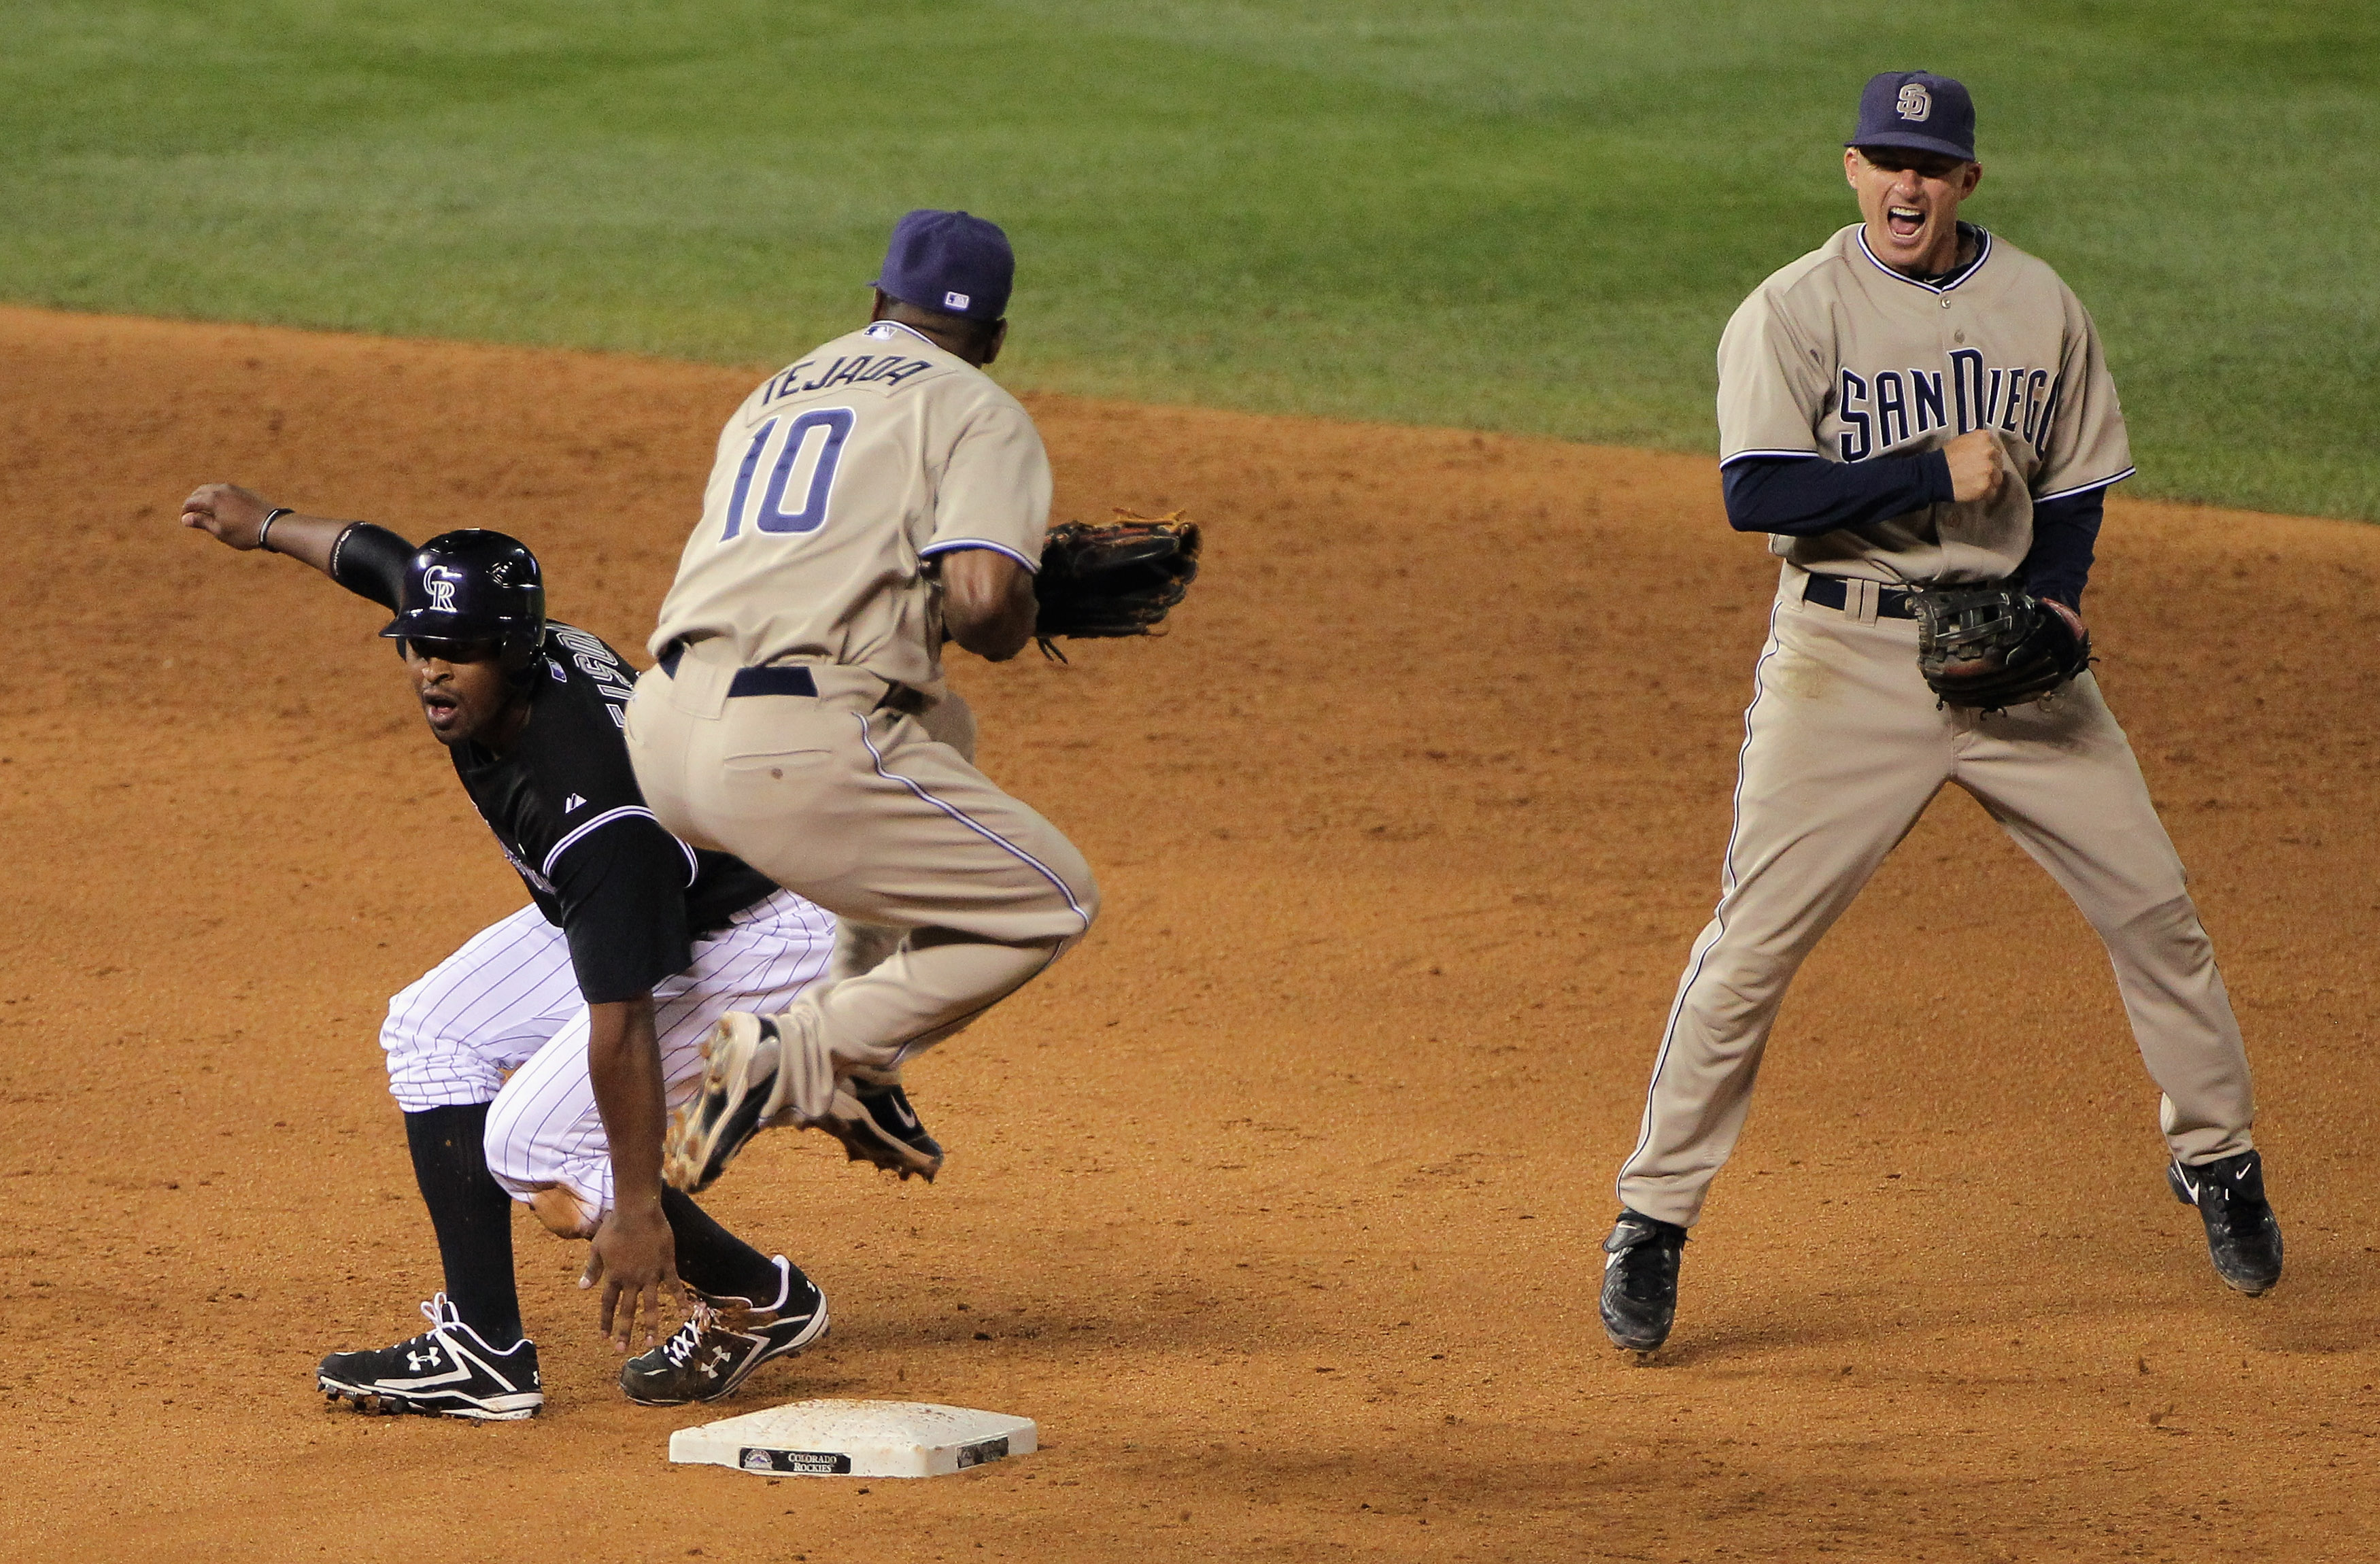 DENVER - SEPTEMBER 14:  Shortstop Miguel Tejada #10 and second baseman David Eckstein #22 of the San Diego Padres celebrate after Tejada turned a double play on Chris Nelson #10 of the Colorado Rockies on a ground ball hit to him by Eric Young Jr to end t